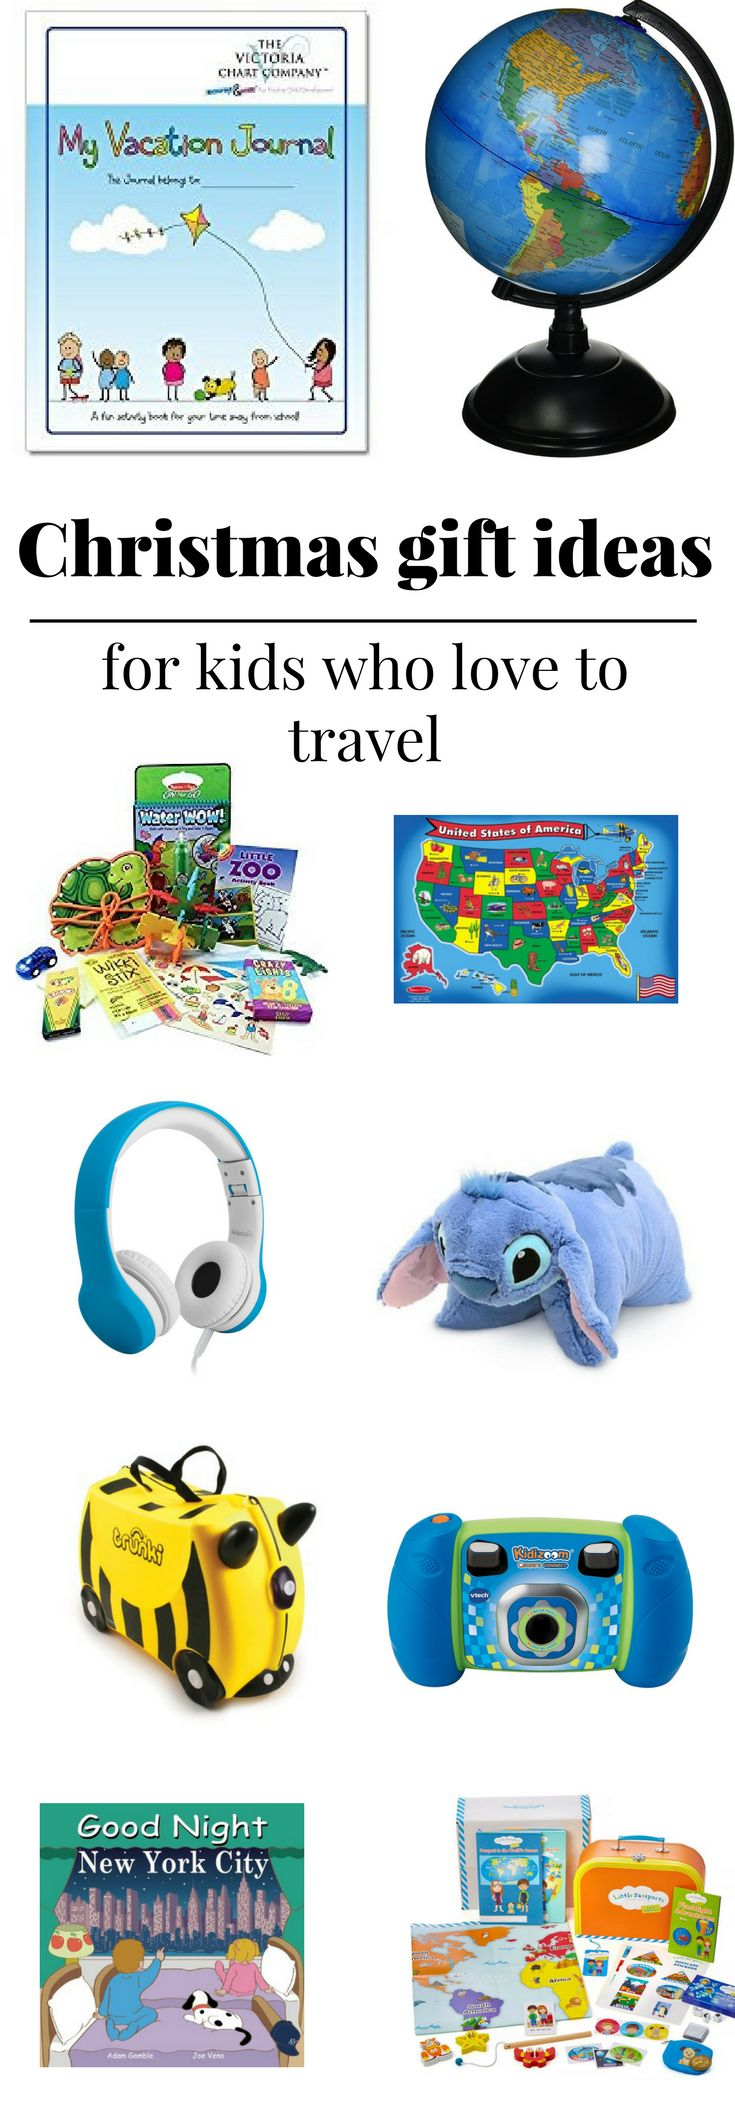 Christmas gift ideas for kids who love to travel